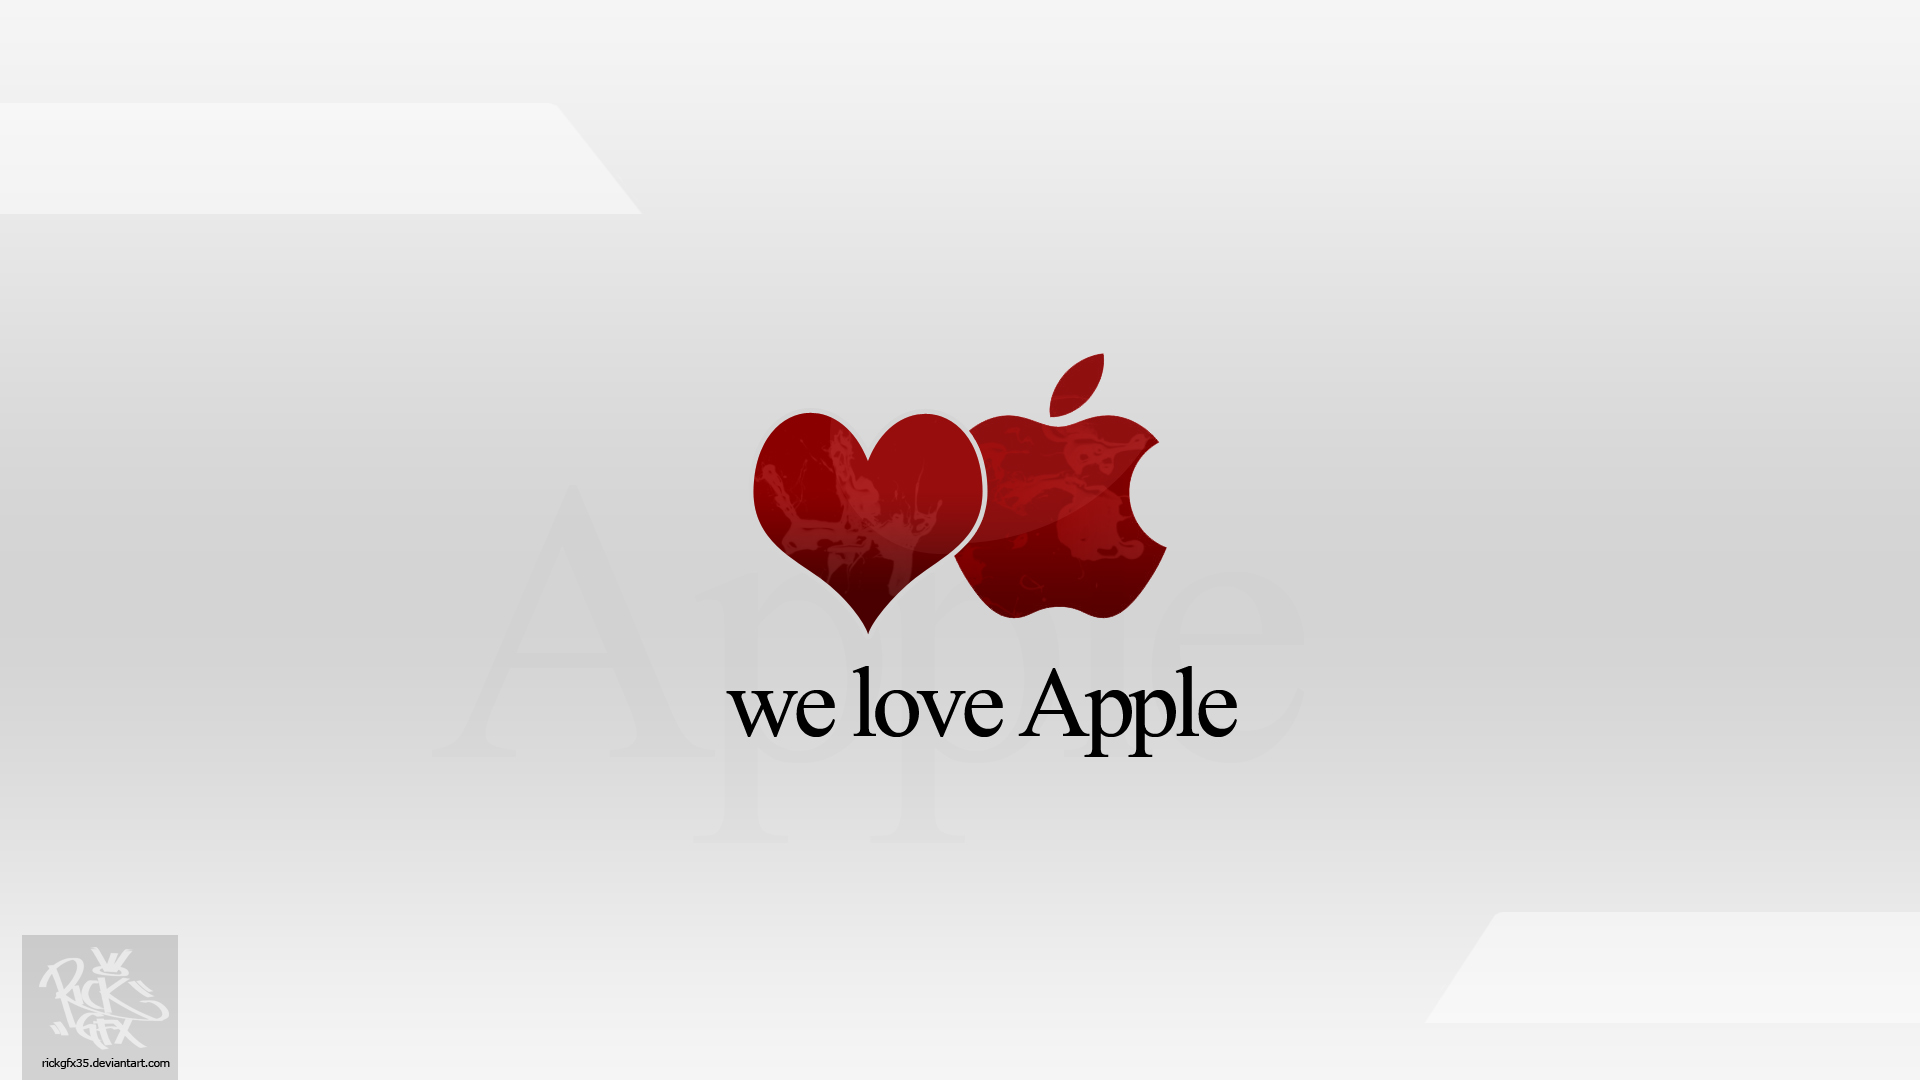 We Love Apple (Wallpaper)